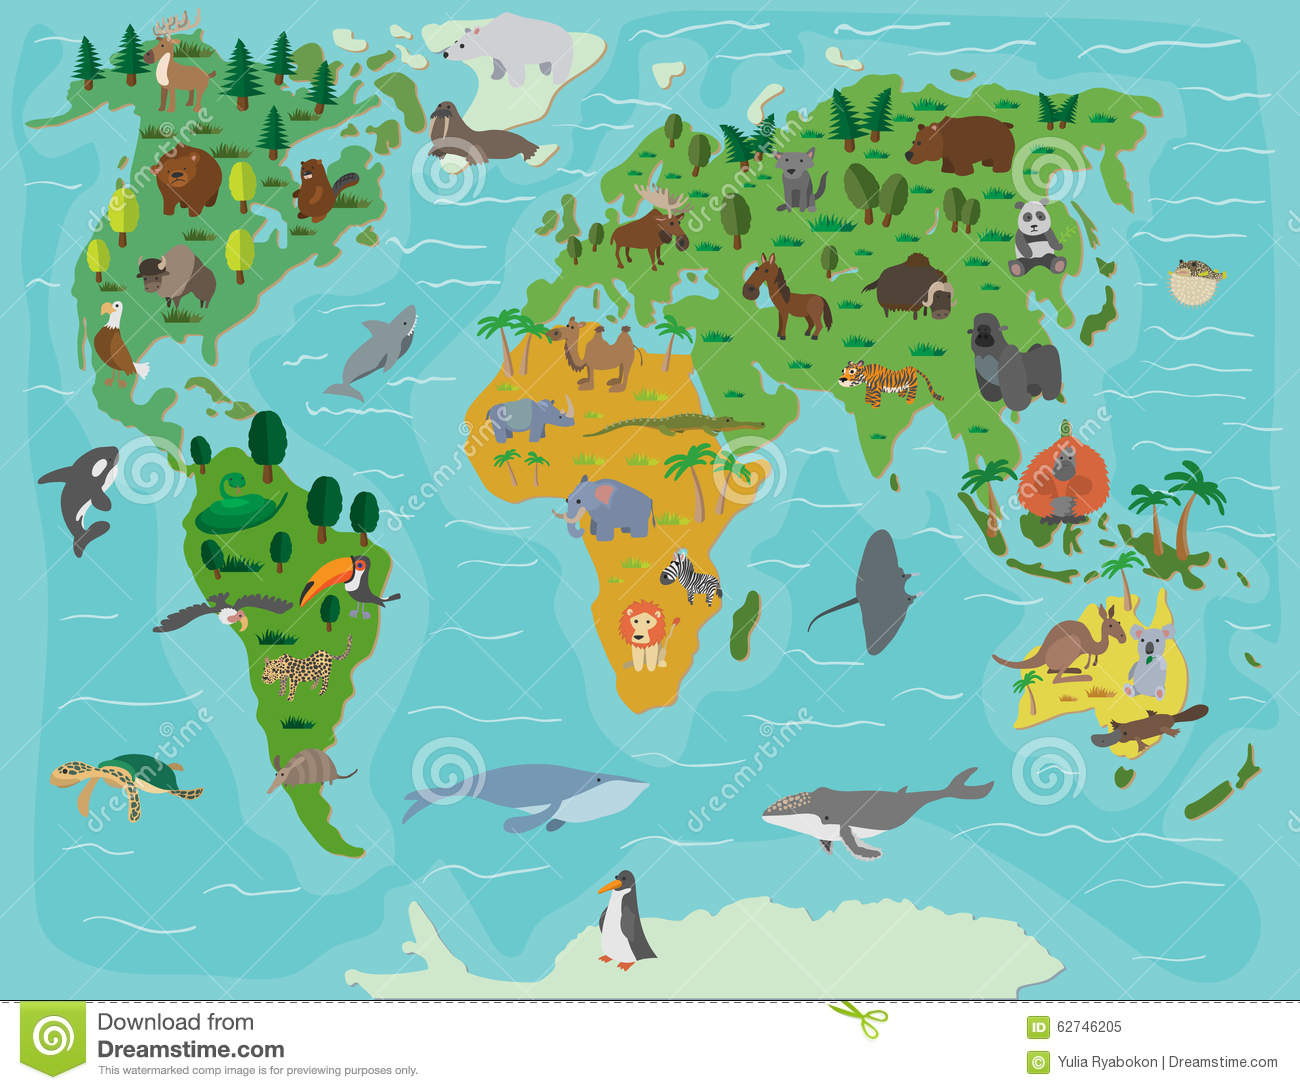 Animal world funny cartoon map stock vector illustration of animal world funny cartoon map gumiabroncs Gallery